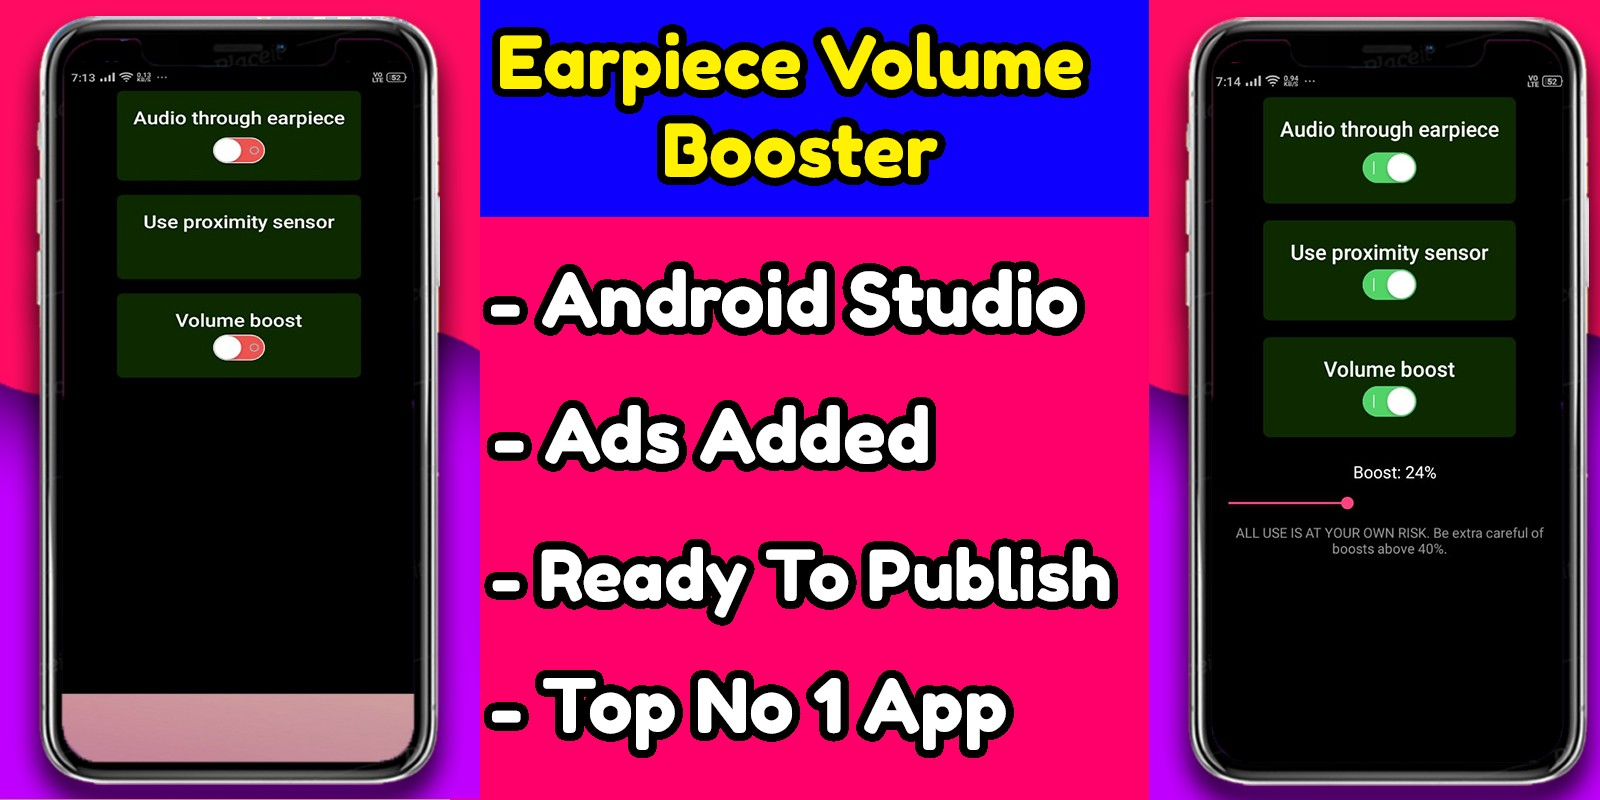 Earpiece Volume Booster - Android App Source Code